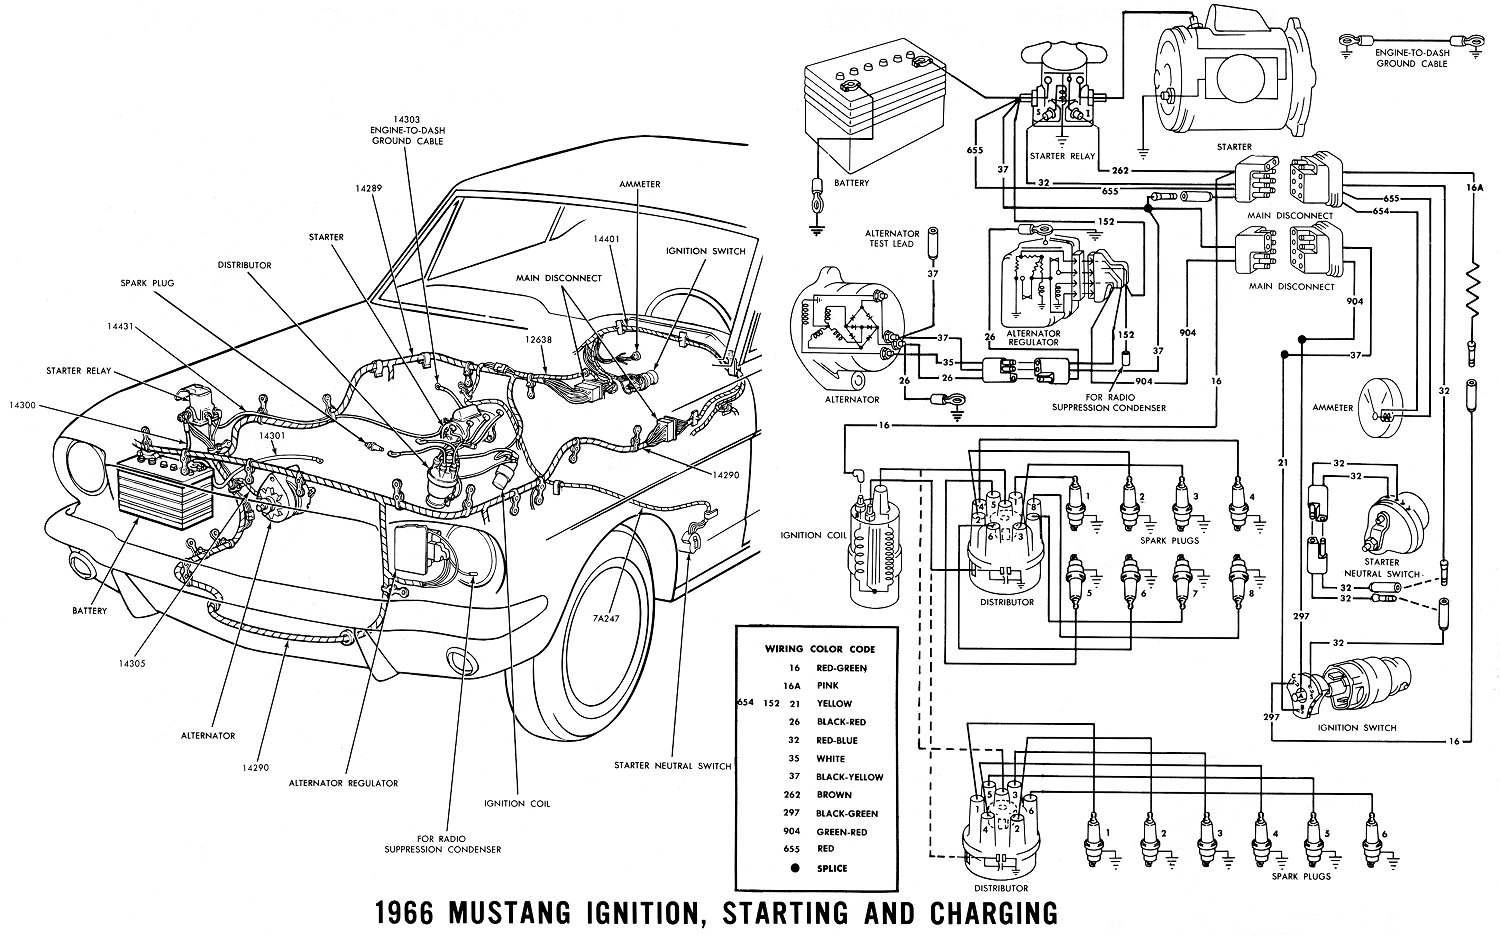 1966 Mustang Wiring Diagrams Average Joe Restoration 2000 Gtp Diagram Free Download Schematic Ignition Starting And Charging